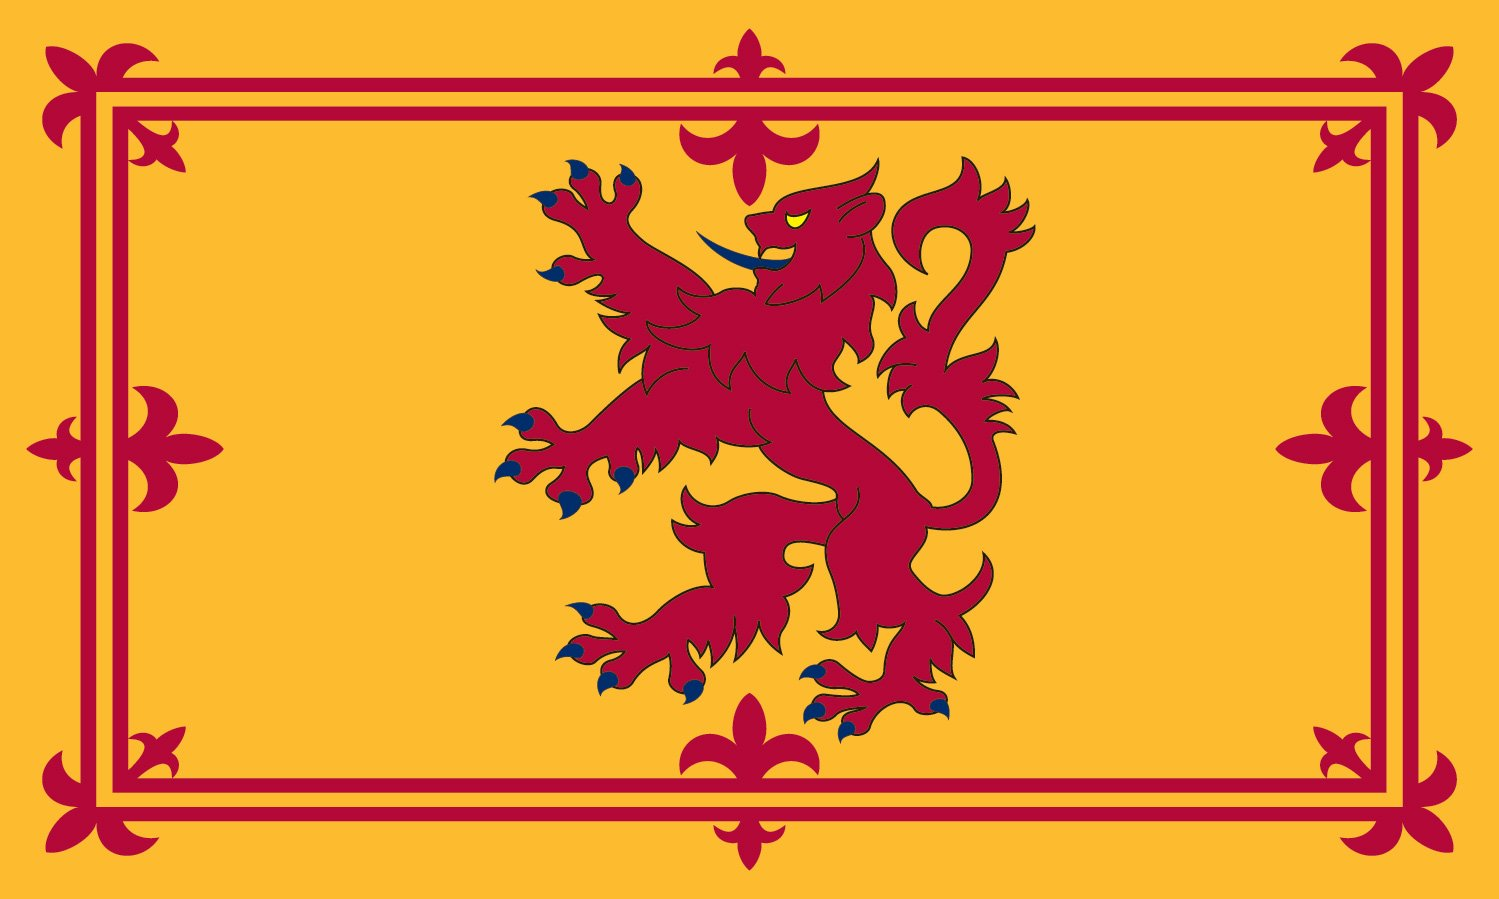 Valley Forge Flag 3-Foot by 5-Foot Nylon Scotland Rampant Lion Flag by Valley Forge